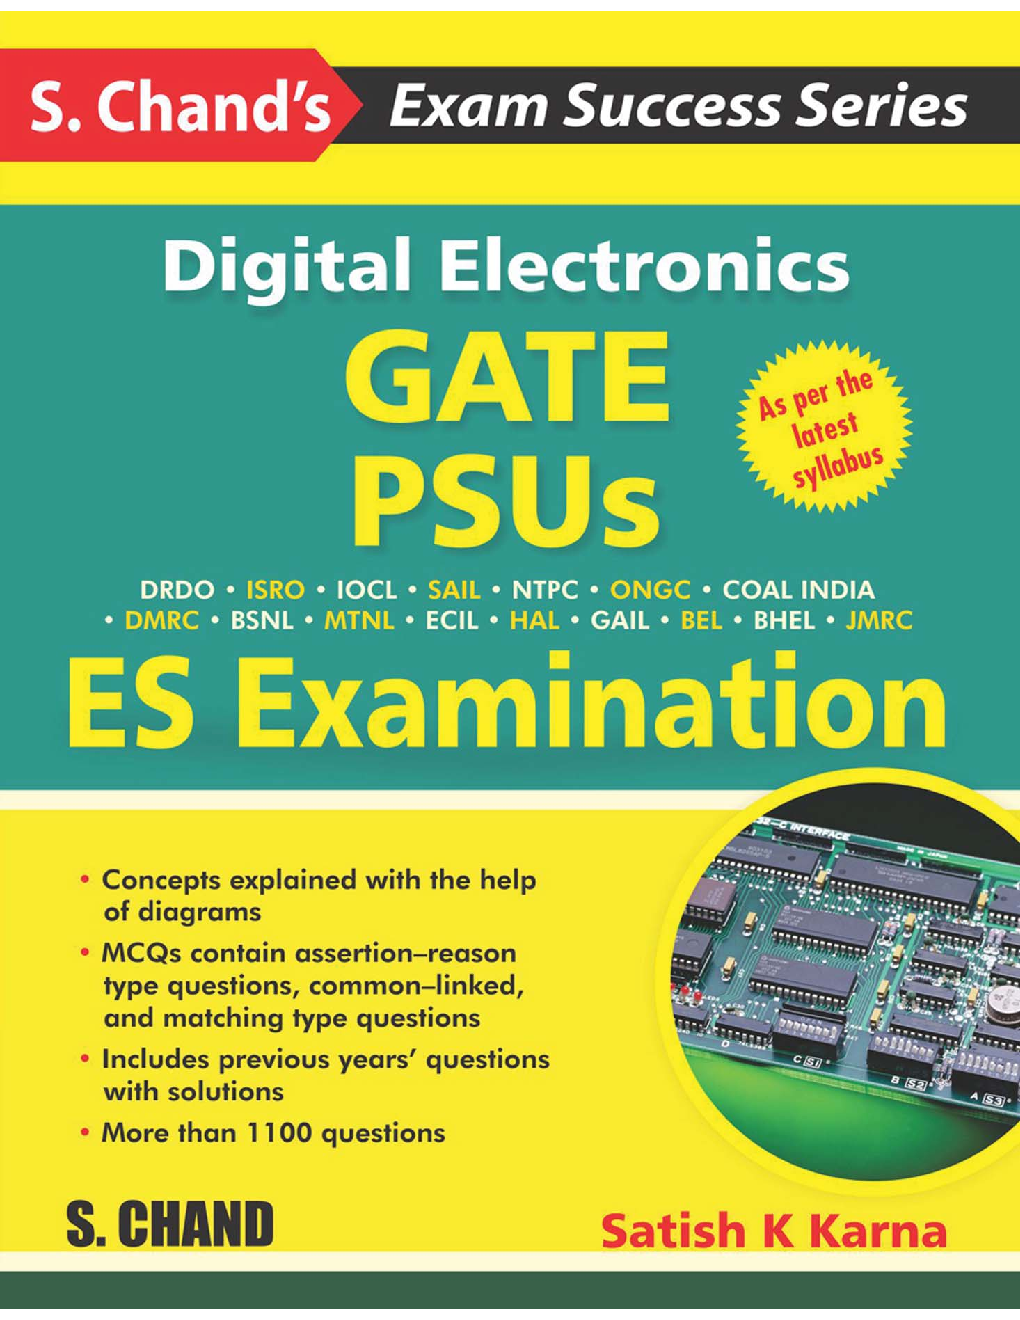 Digital Electronics - GATE, PSUS And ES Examination - Page 1